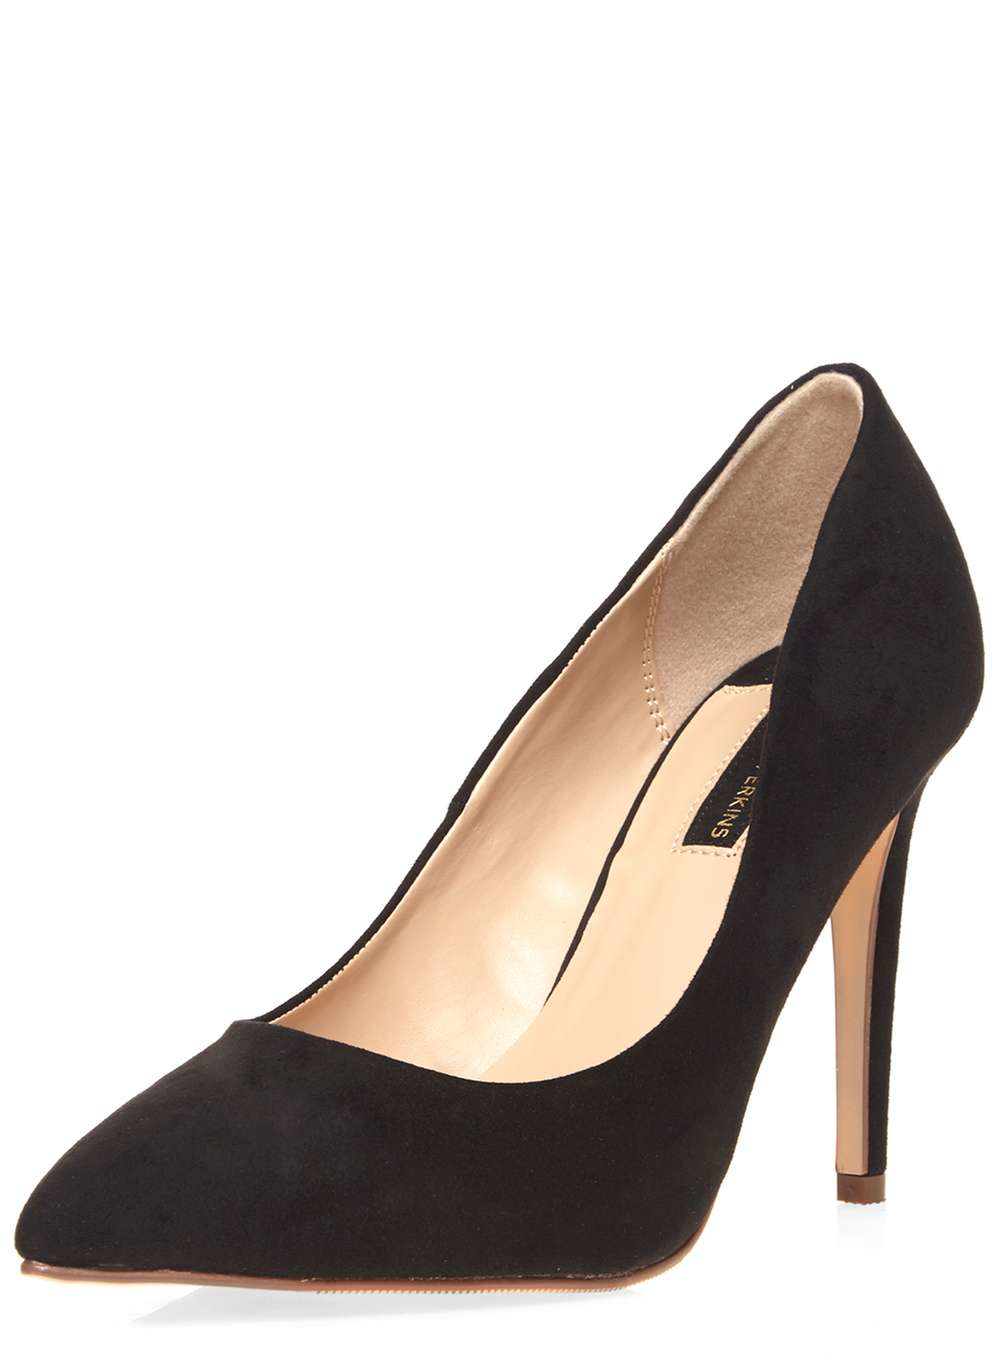 Dorothy Perkins Black Court Shoes